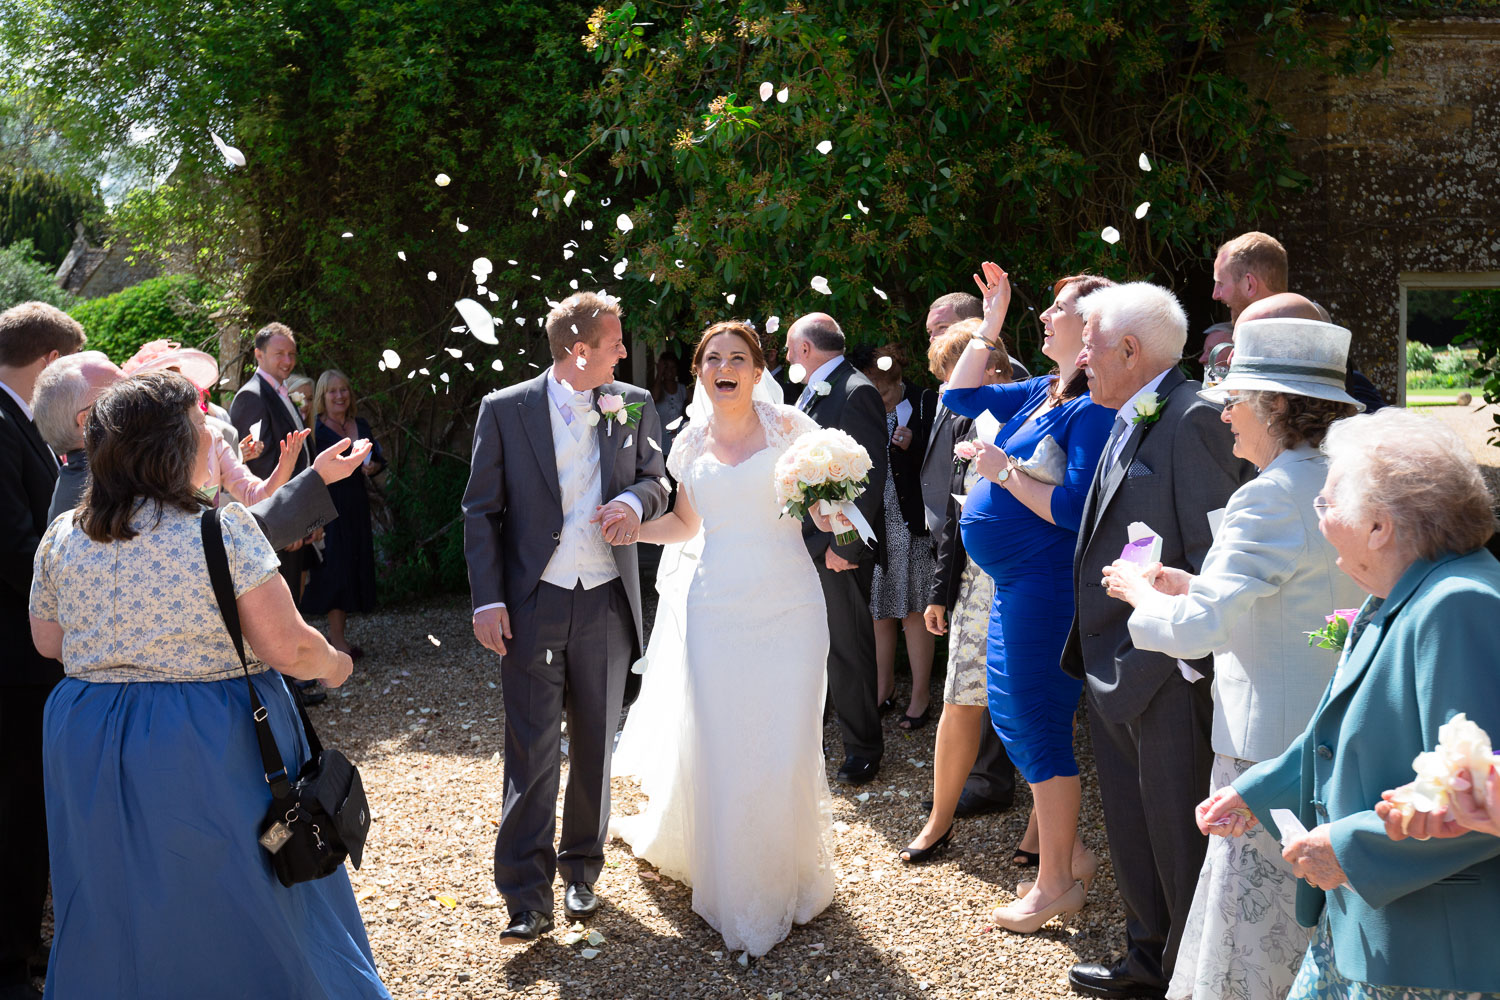 Documentary wedding photography bride and groom in confetti